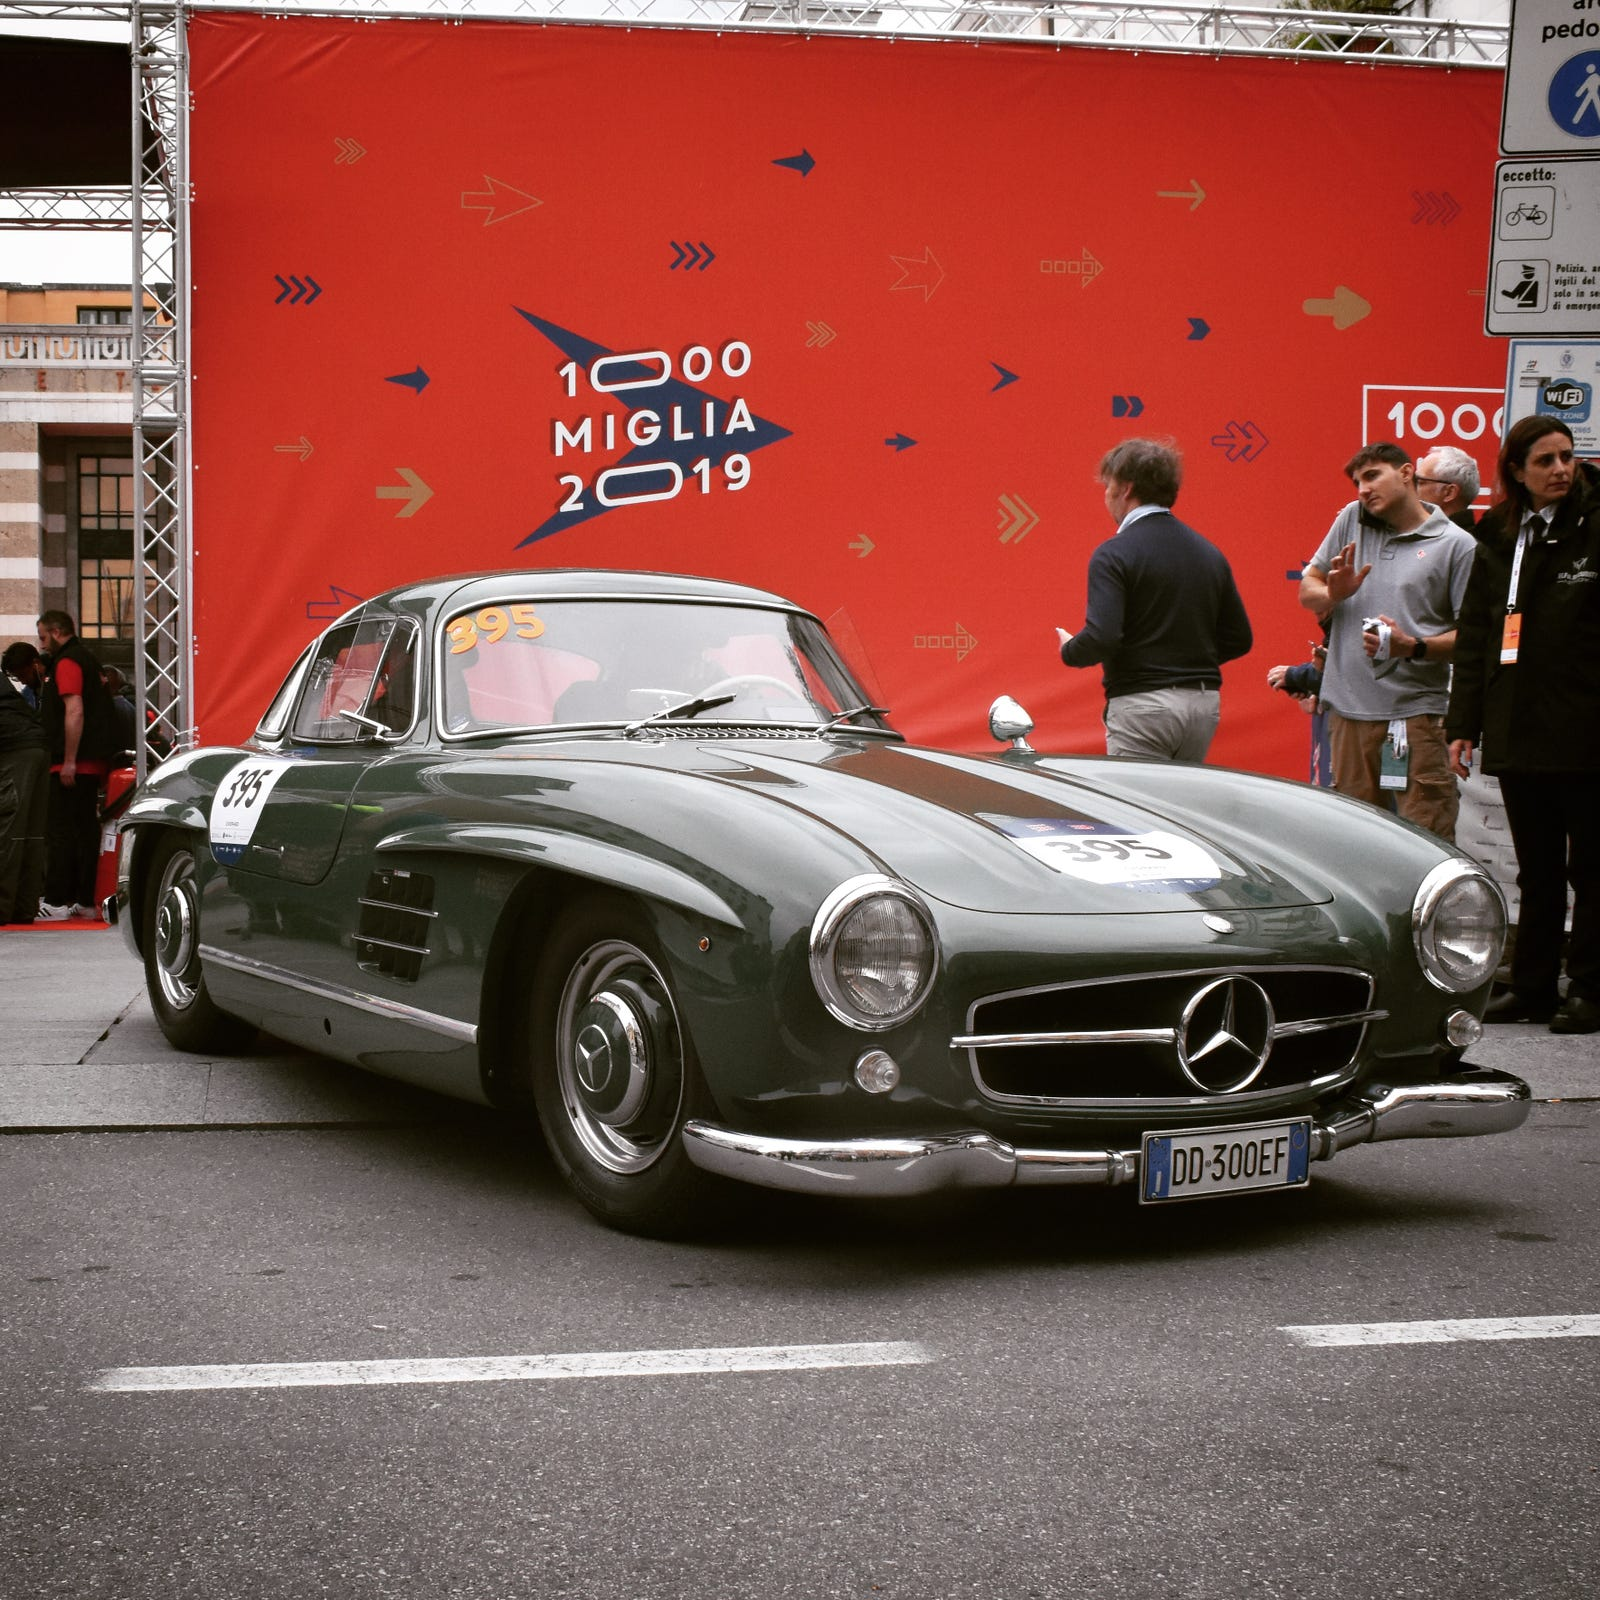 1955 Mercedes-Benz 300 SL (W198) leaving the sealing paddock in Brescia, Italy on day 1 of the 2019 Mille Miglia.